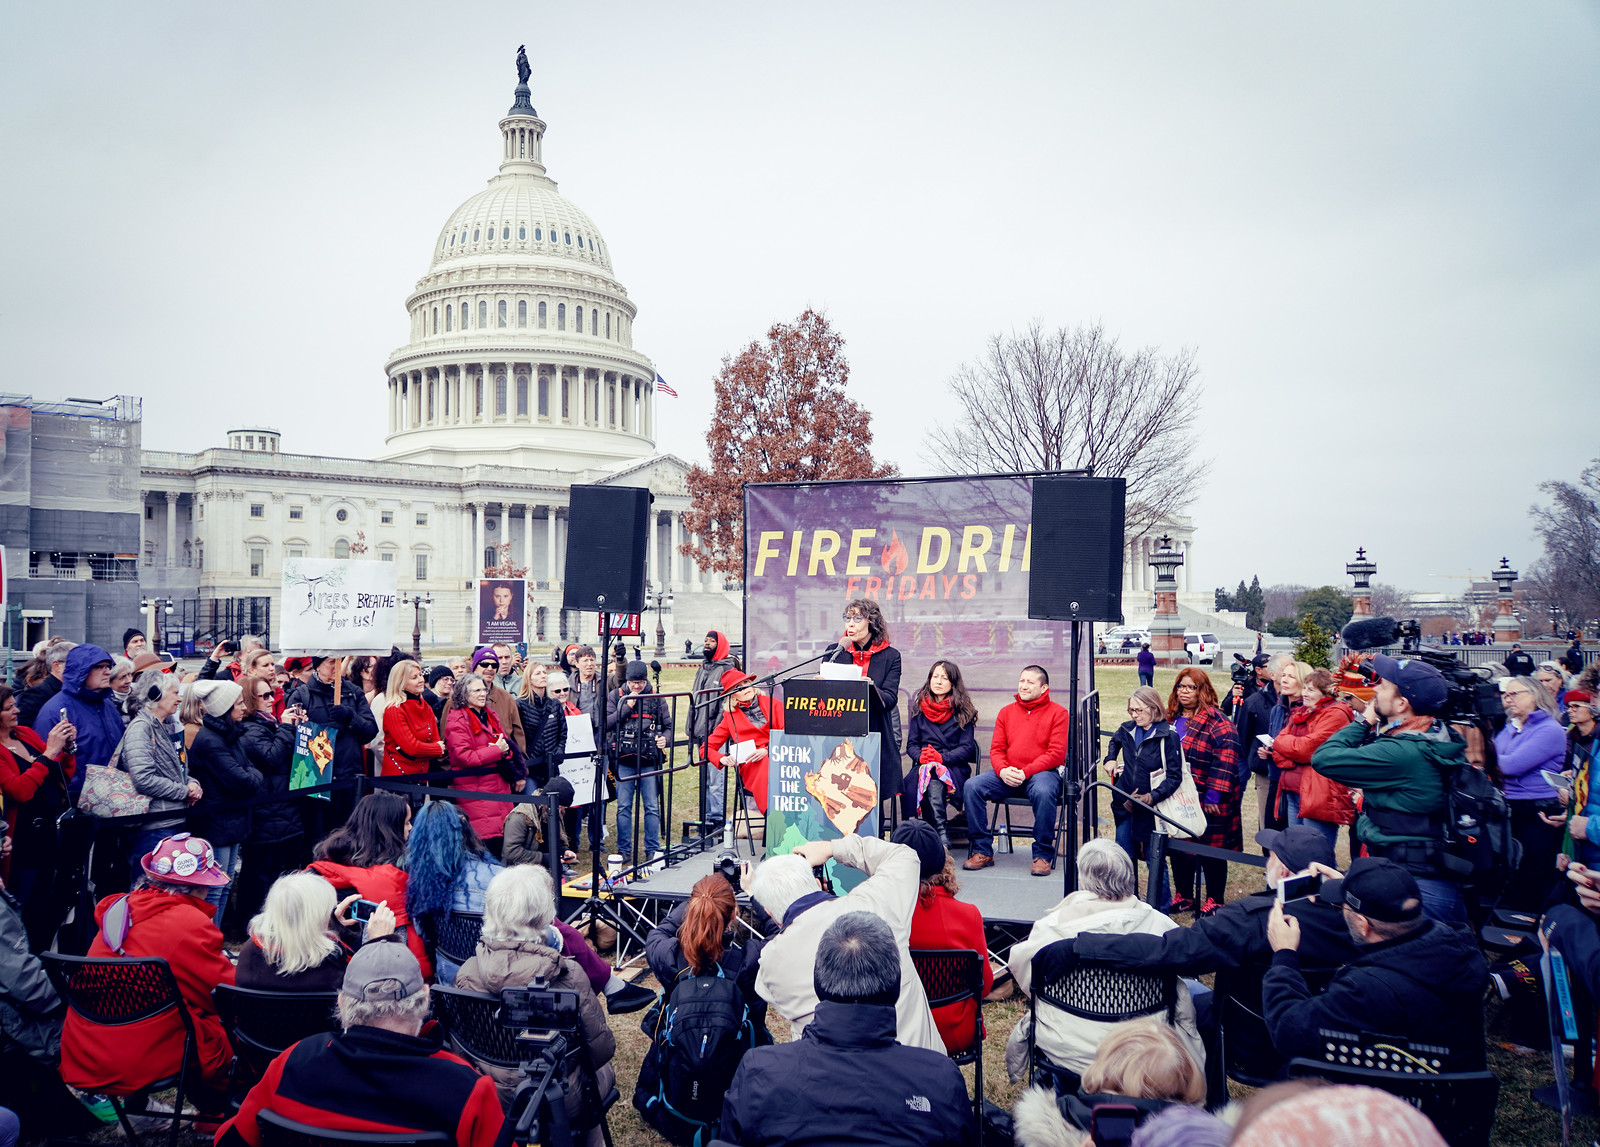 Photos: Fire Drill Friday – Forests Can't Wait, with Jane Fonda and Lily Tomlin, United States Capitol, Washington, DC